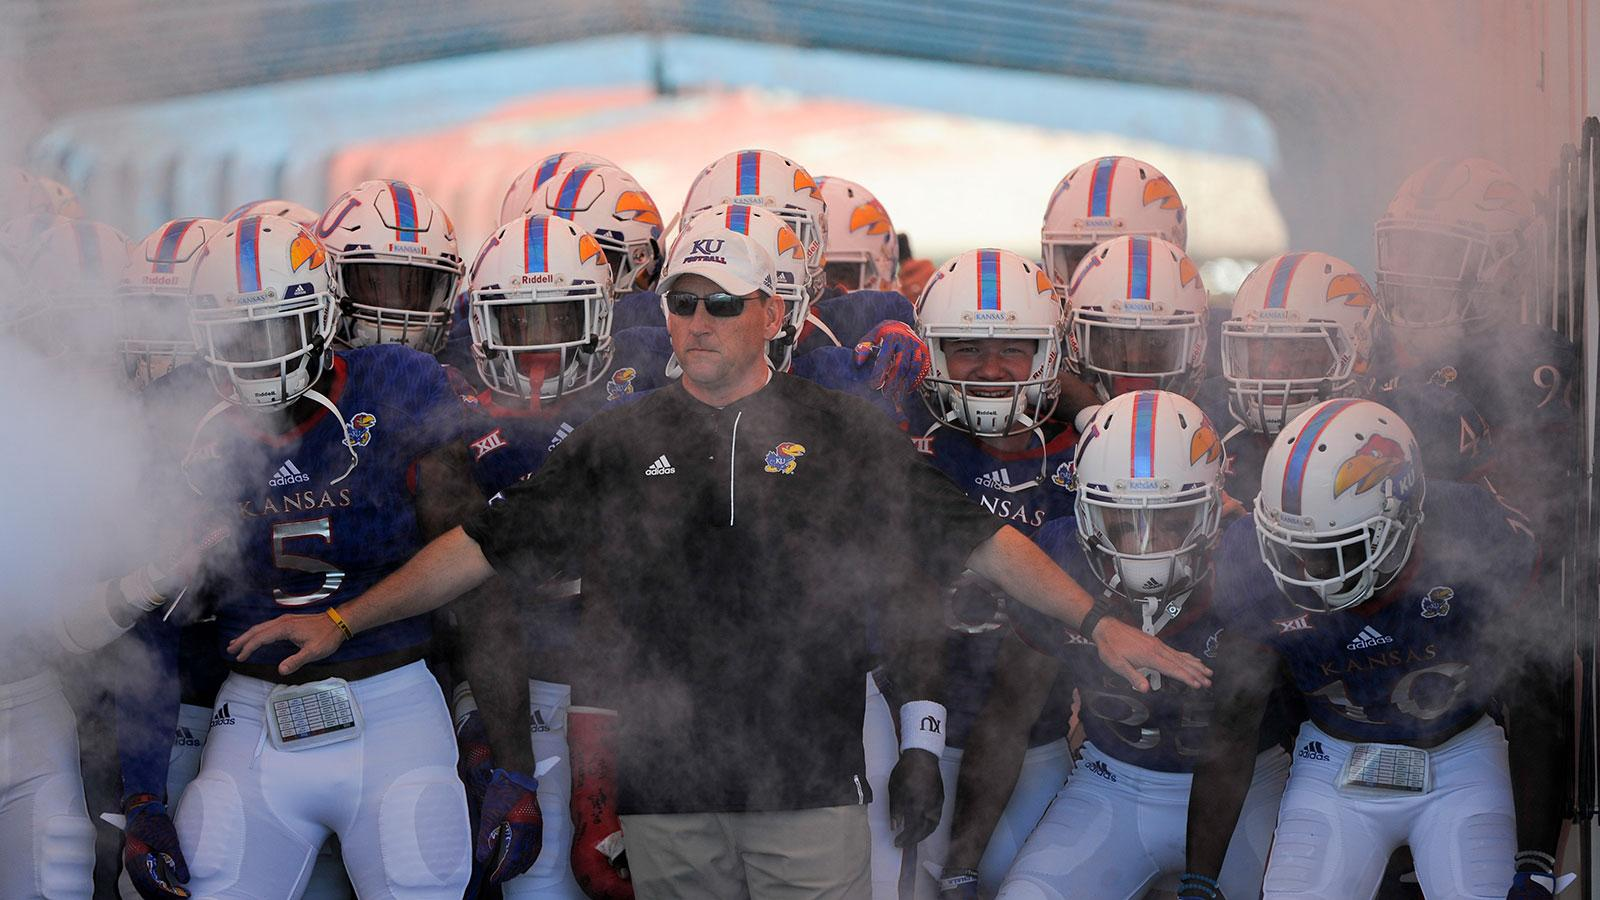 University of Kansas coach David Beaty received a lucrative contract extension that doubled his salary from $800,000 to $1.6 million, despite the team's 2-10 record.